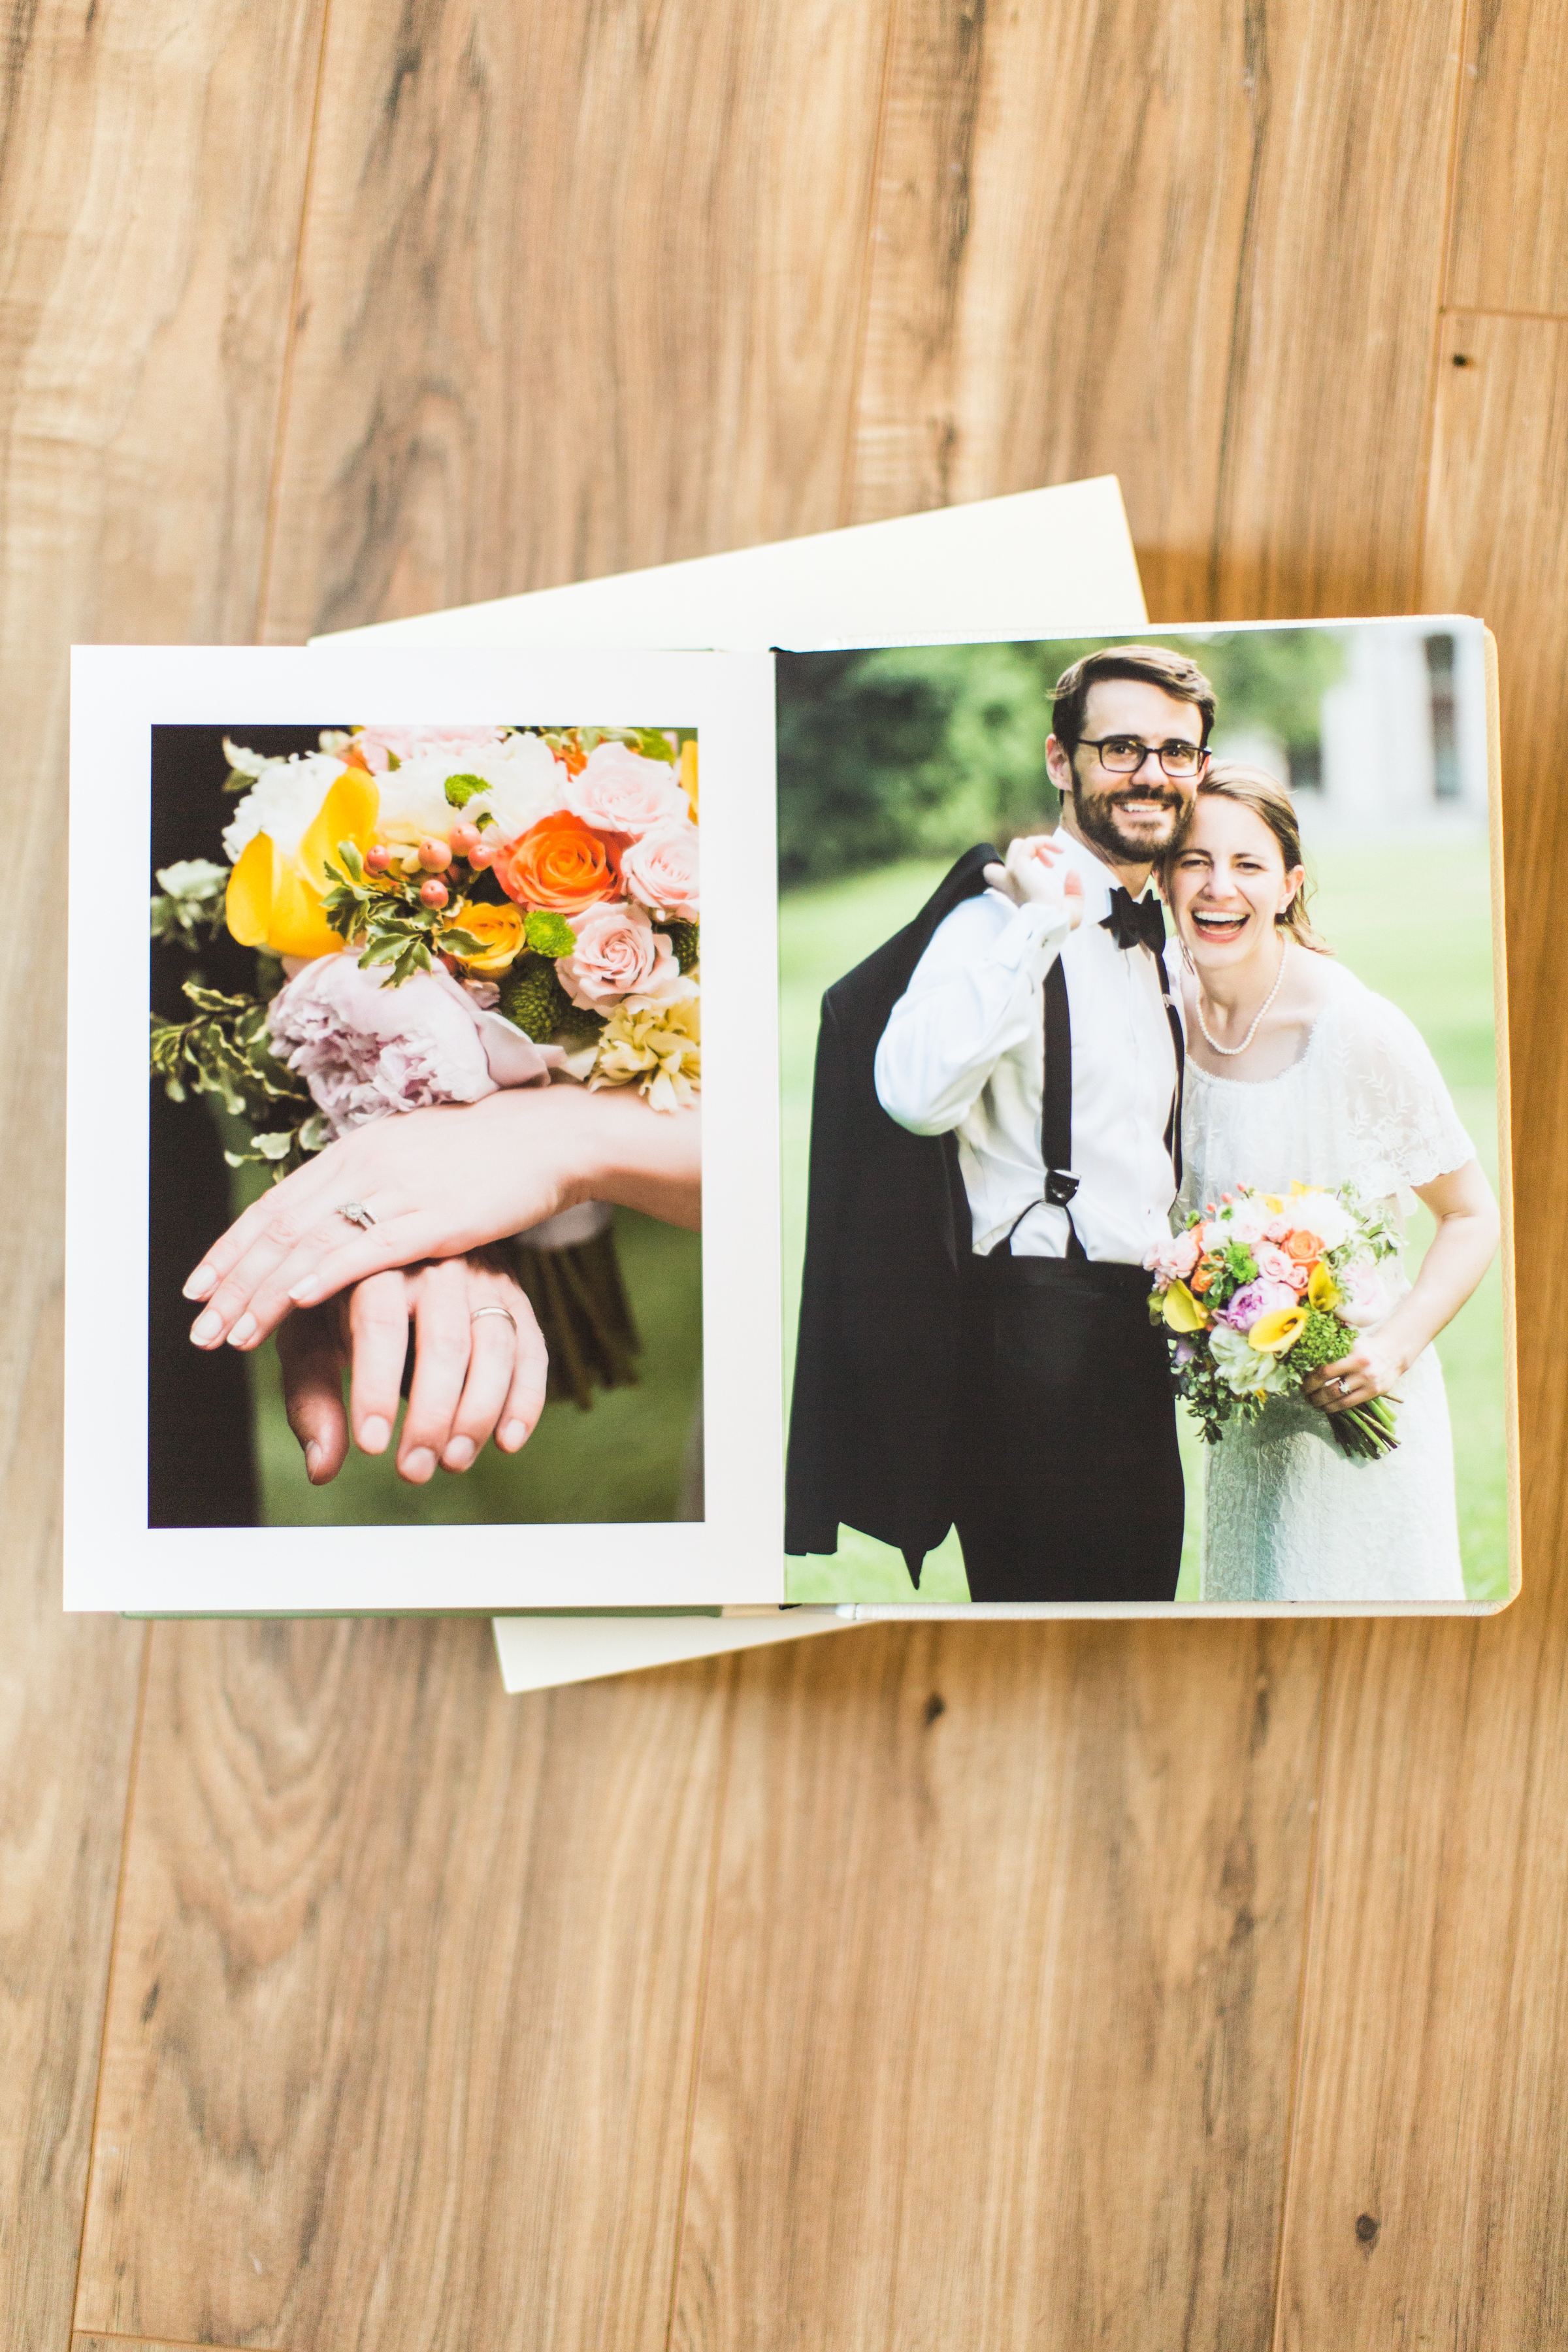 DO I GET TO SEE WHAT MY ALBUM LOOKS LIKE BEFORE IT'S PRINTED? - Of course! After delivery of the wedding images, I will send you a preliminary design for your wedding album. I do this because it helps you to have at least a starting point to work with, and see how your favorite images will fit into the design. The albums are designed to flow and tell a story, not just place a myriad of pictures on every page. To do this, I make use of negative space, panoramas, and multi-image spreads. Ultimately, however, you get the final say and will be able to review the interior and exterior designs before it is sent to the craftsmen in Italy.